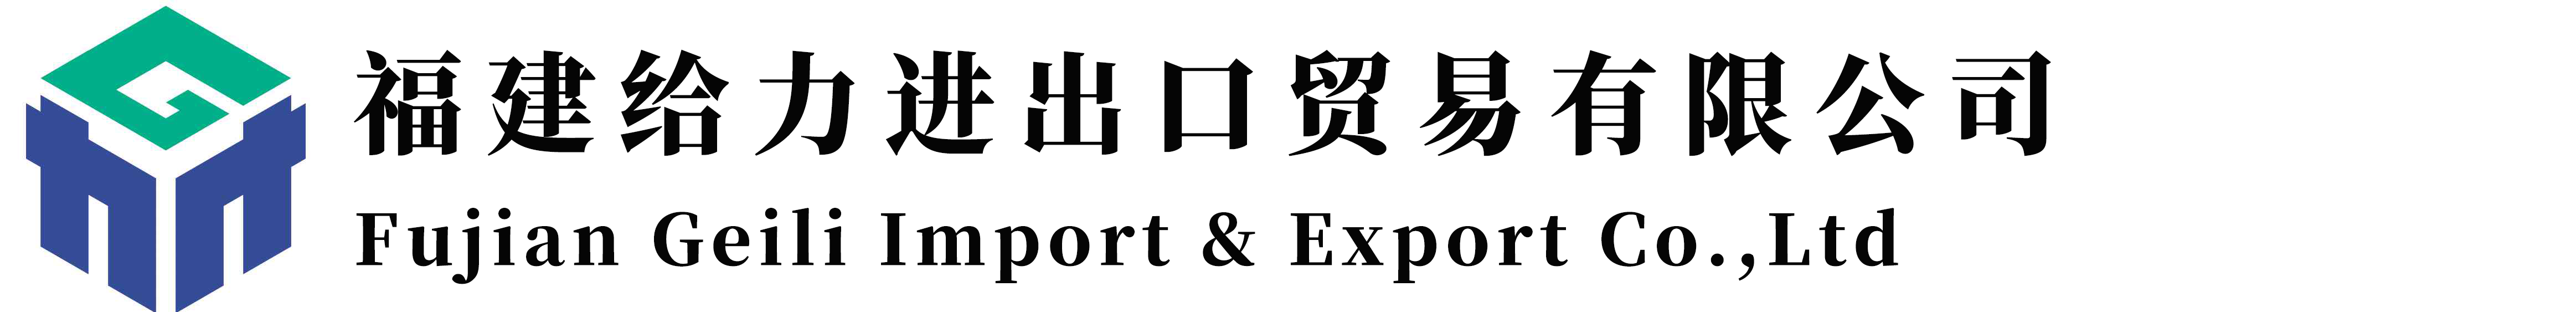 FUJIAN GEILI IMPORT & EXPORT CO.,LTD